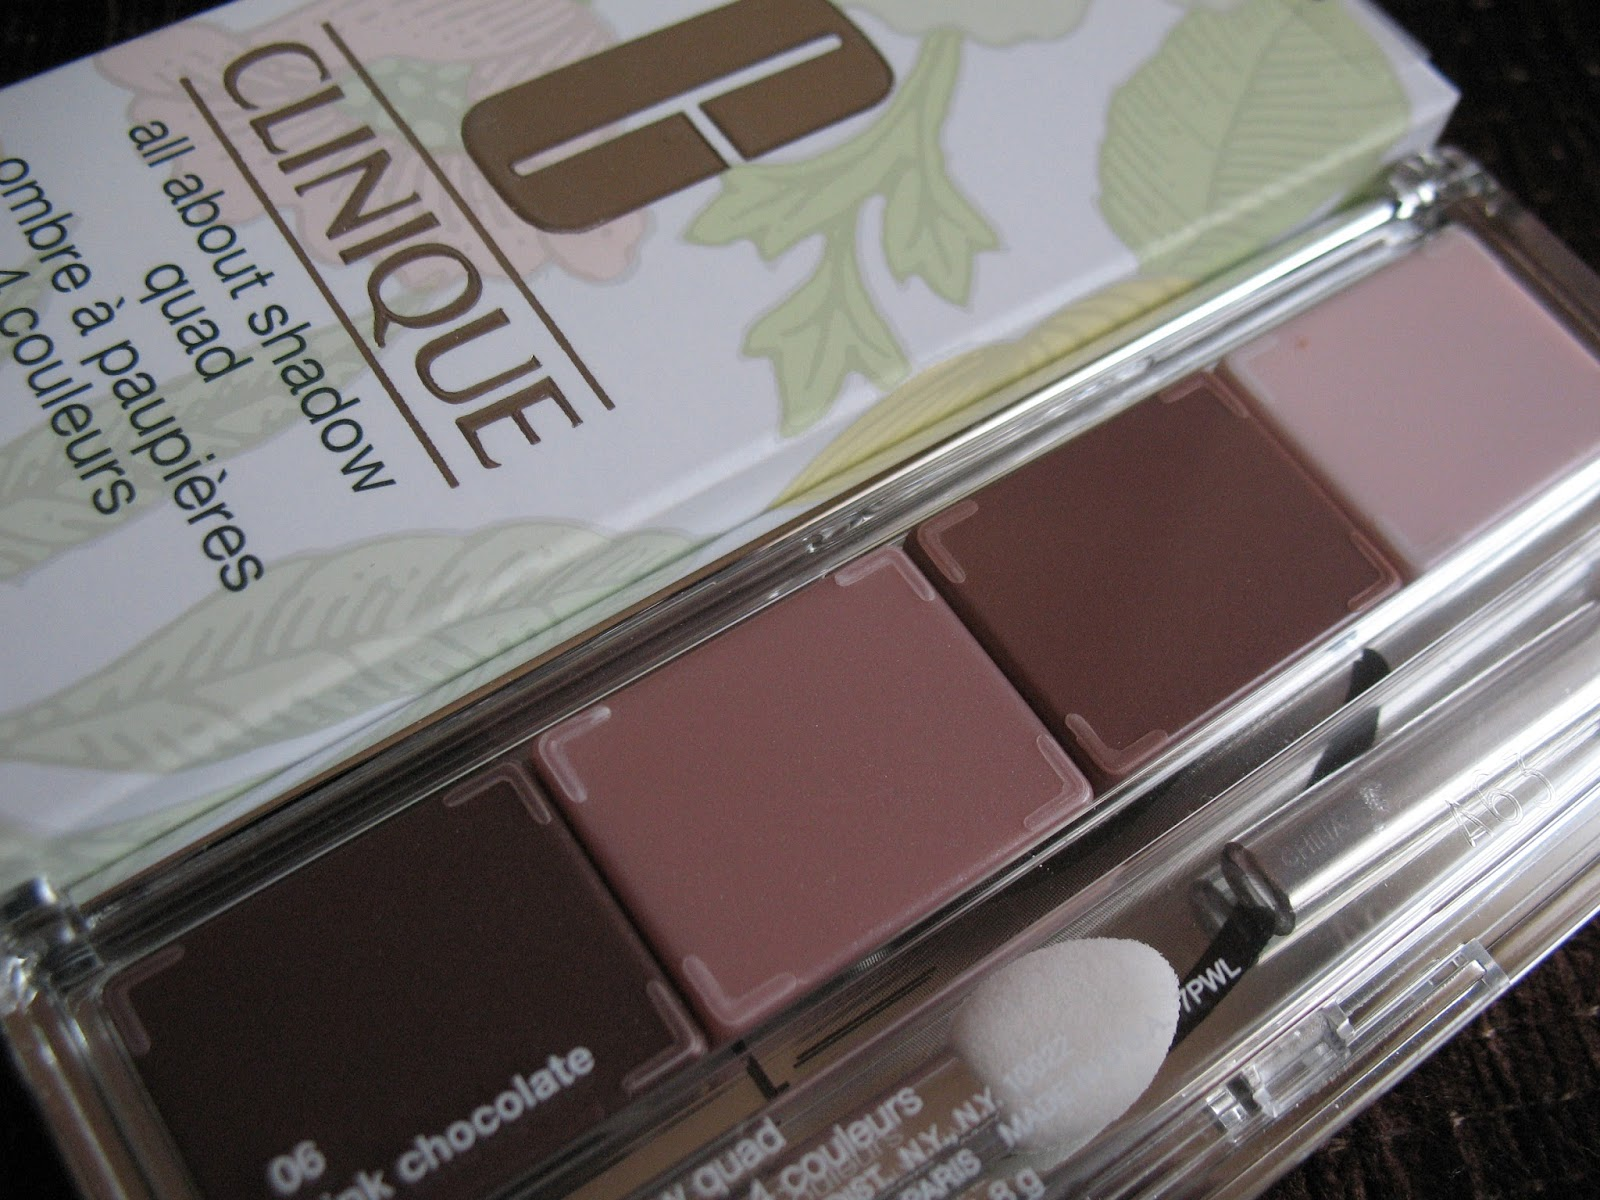 Clinique All About Shadow Quad 'Pink Chocolate' | review, photos - 01